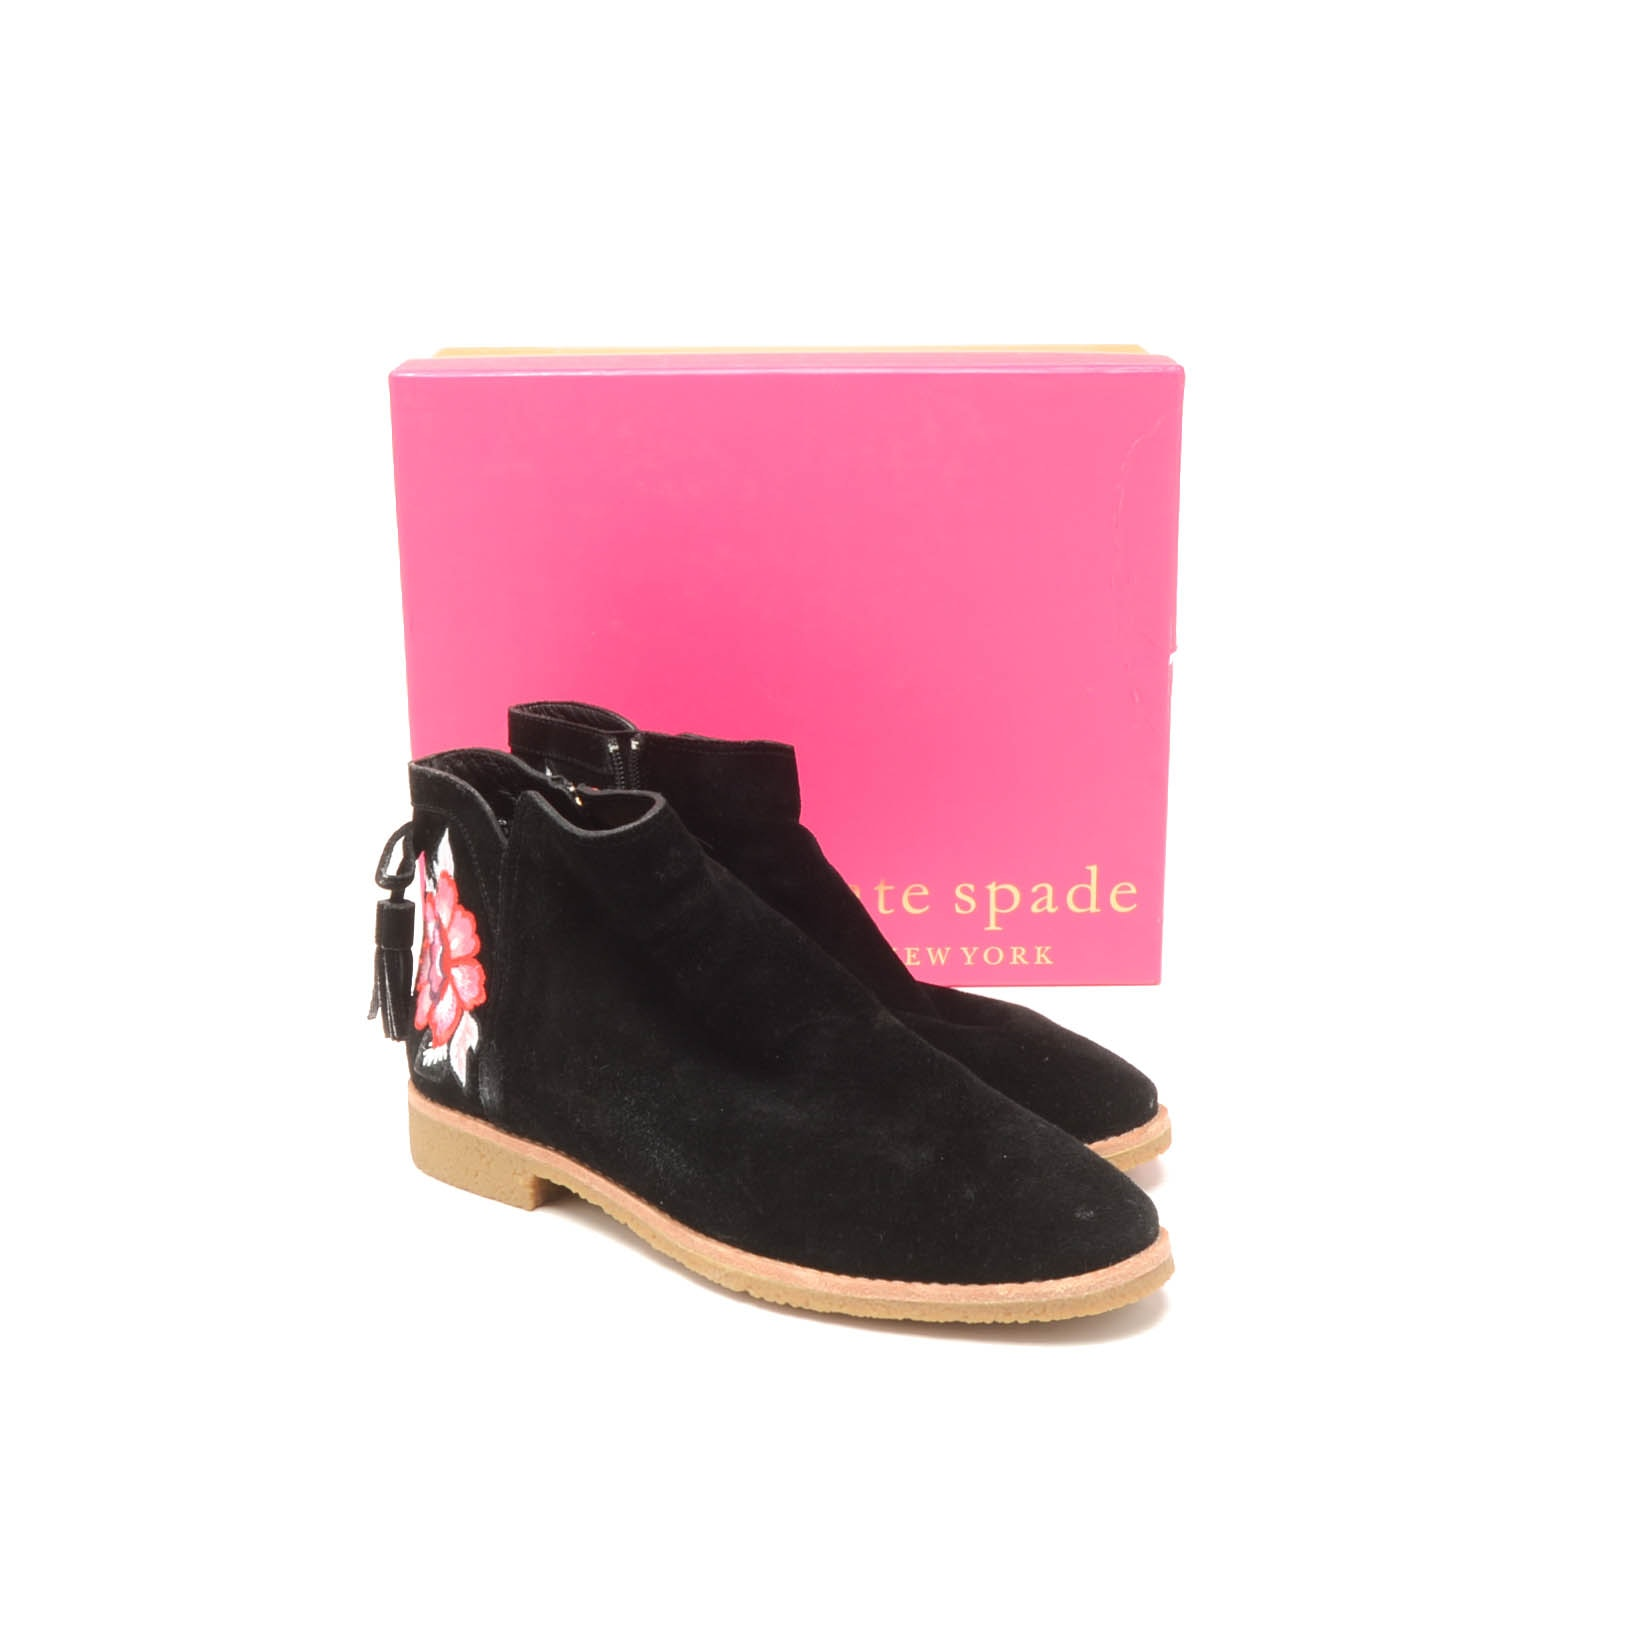 Kate Spade New York Bellville Black Suede Booties with Embroidered Roses